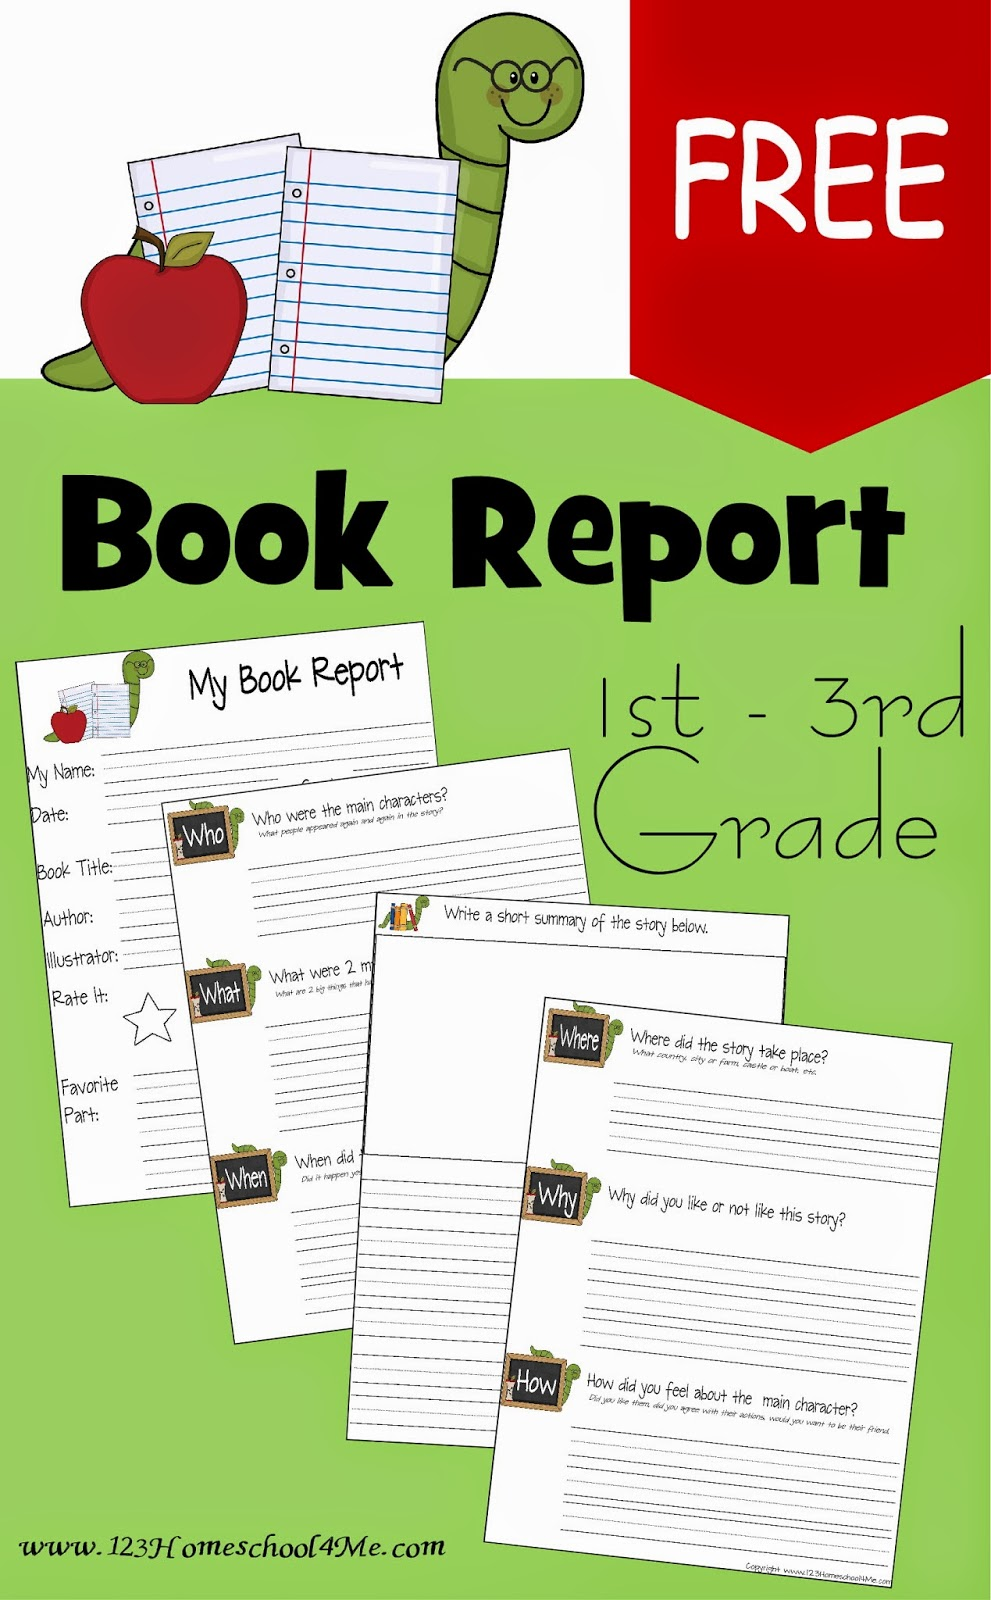 Book Report Forms   FREE Printable Book Report Forms For 1st Grade, 2nd  Grade,  Book Report Template Free